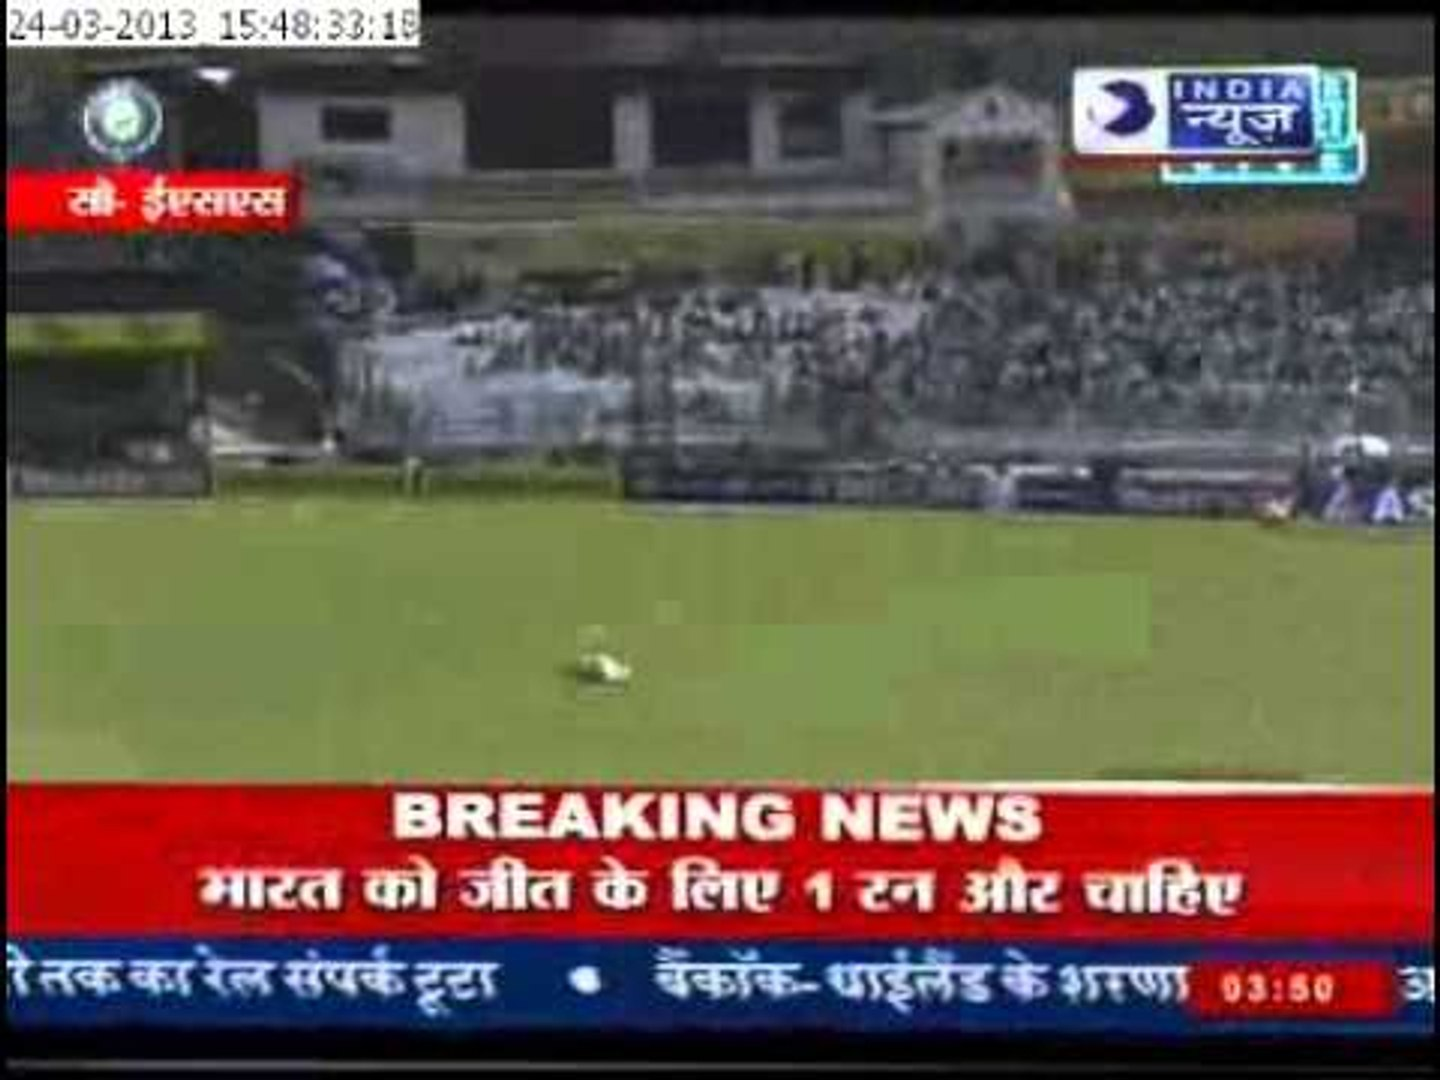 India News: India beats Australia in Kotla Test